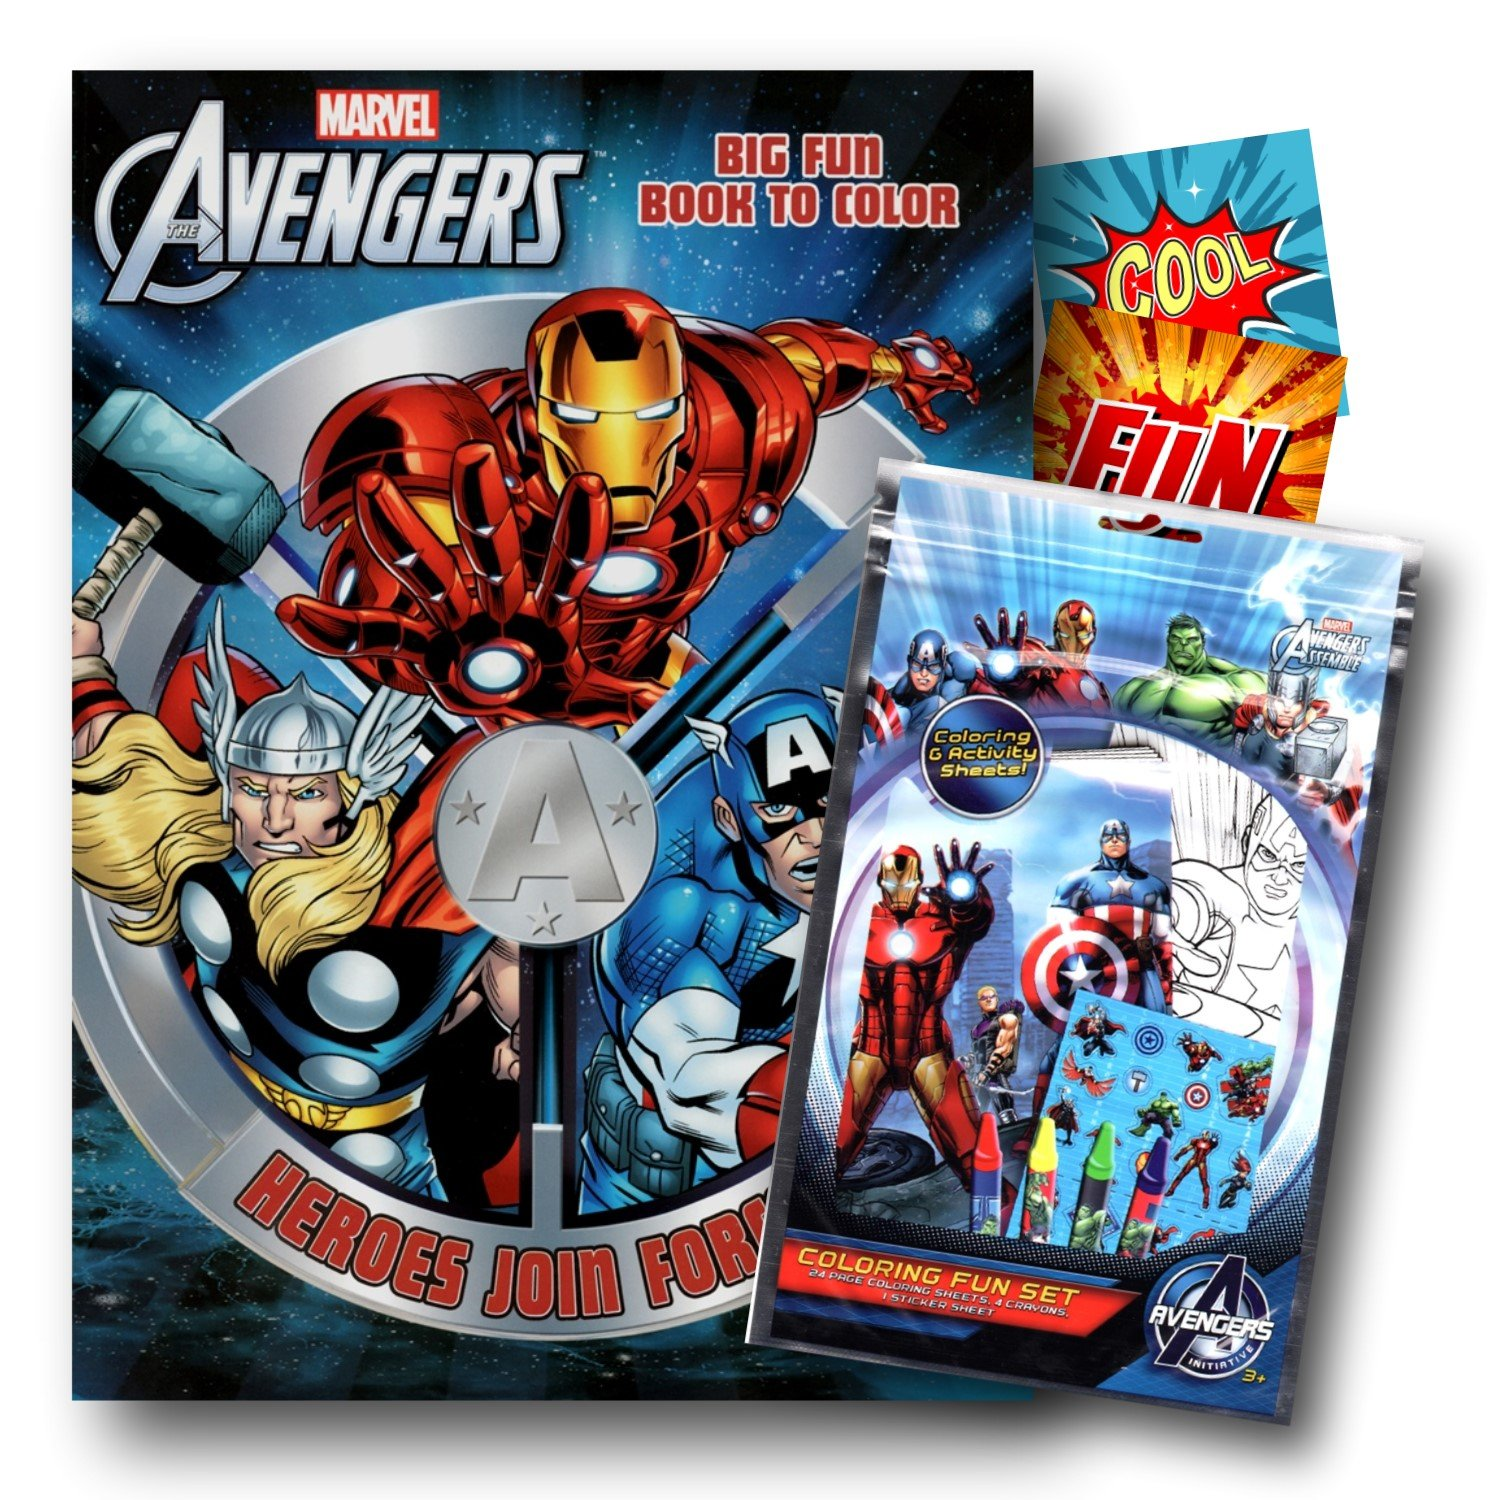 Marvel Avengers Coloring Book with Coloring Fun Pack Bundled with 2 Specialty Separately Licensed GWW Reward Stickers Bendon Coloring Activities